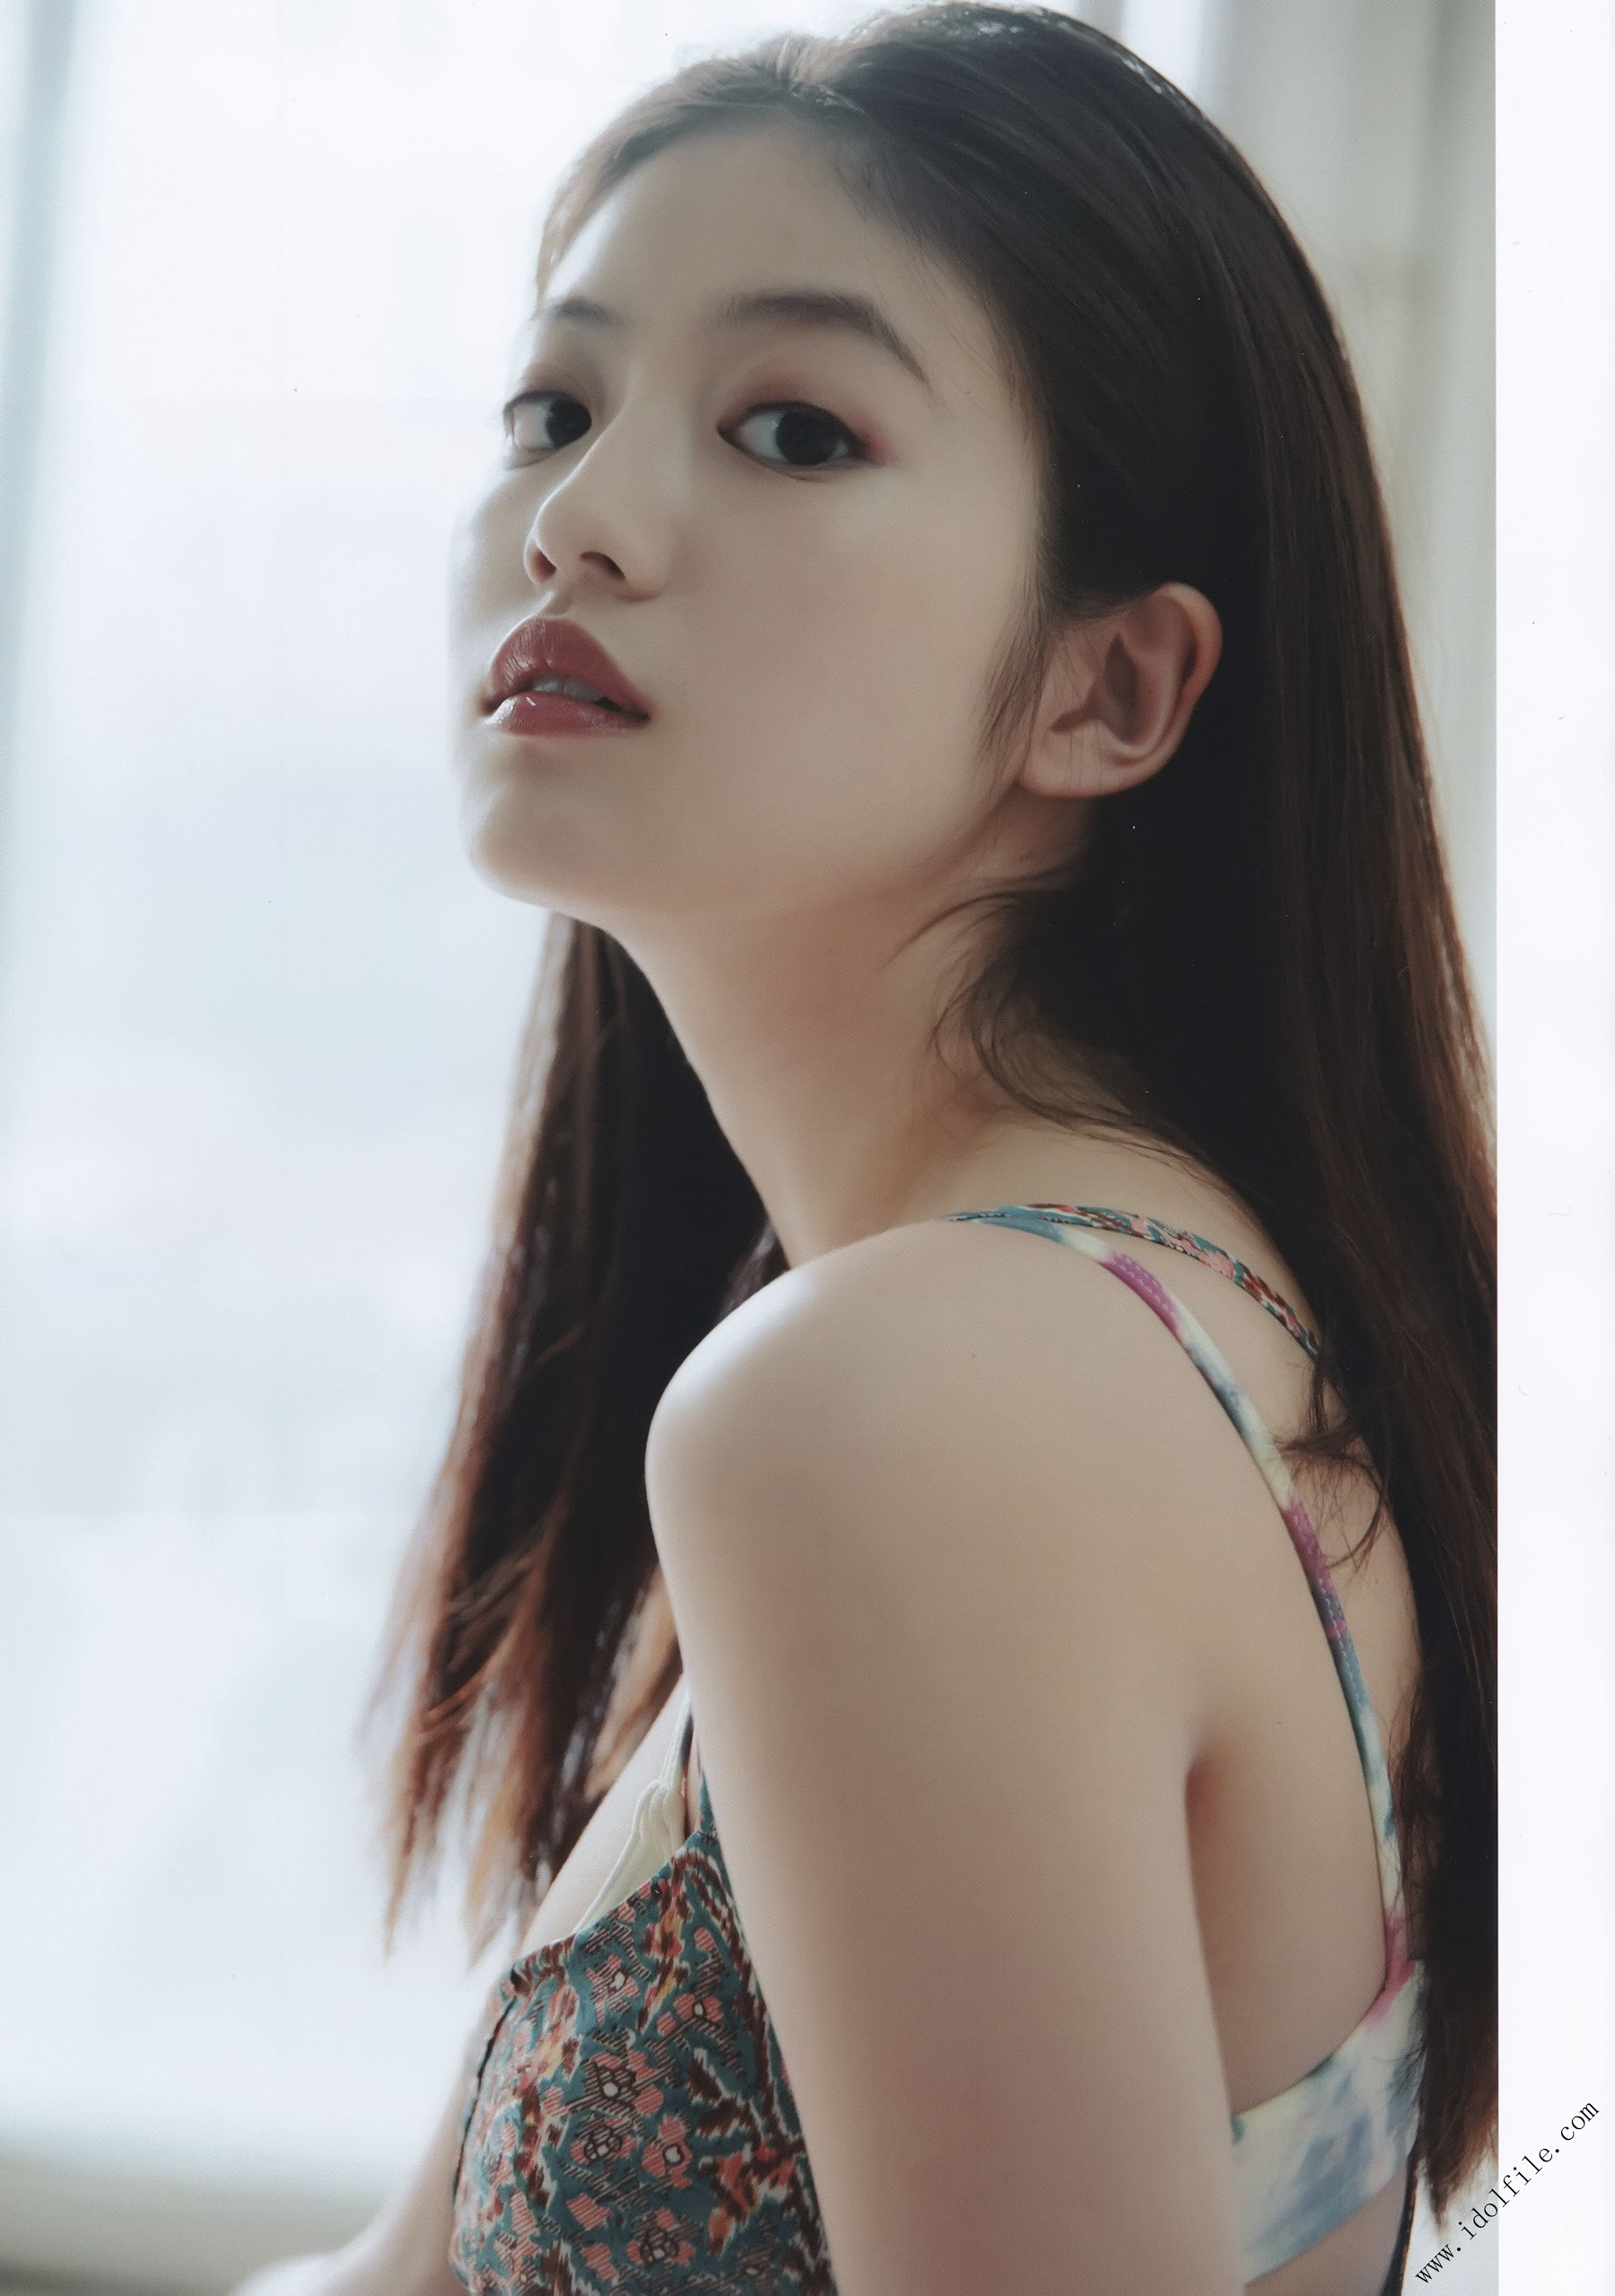 Pretty and beautiful, 22 years old and innocent Moving to the next stage as an actress Mio Imada051